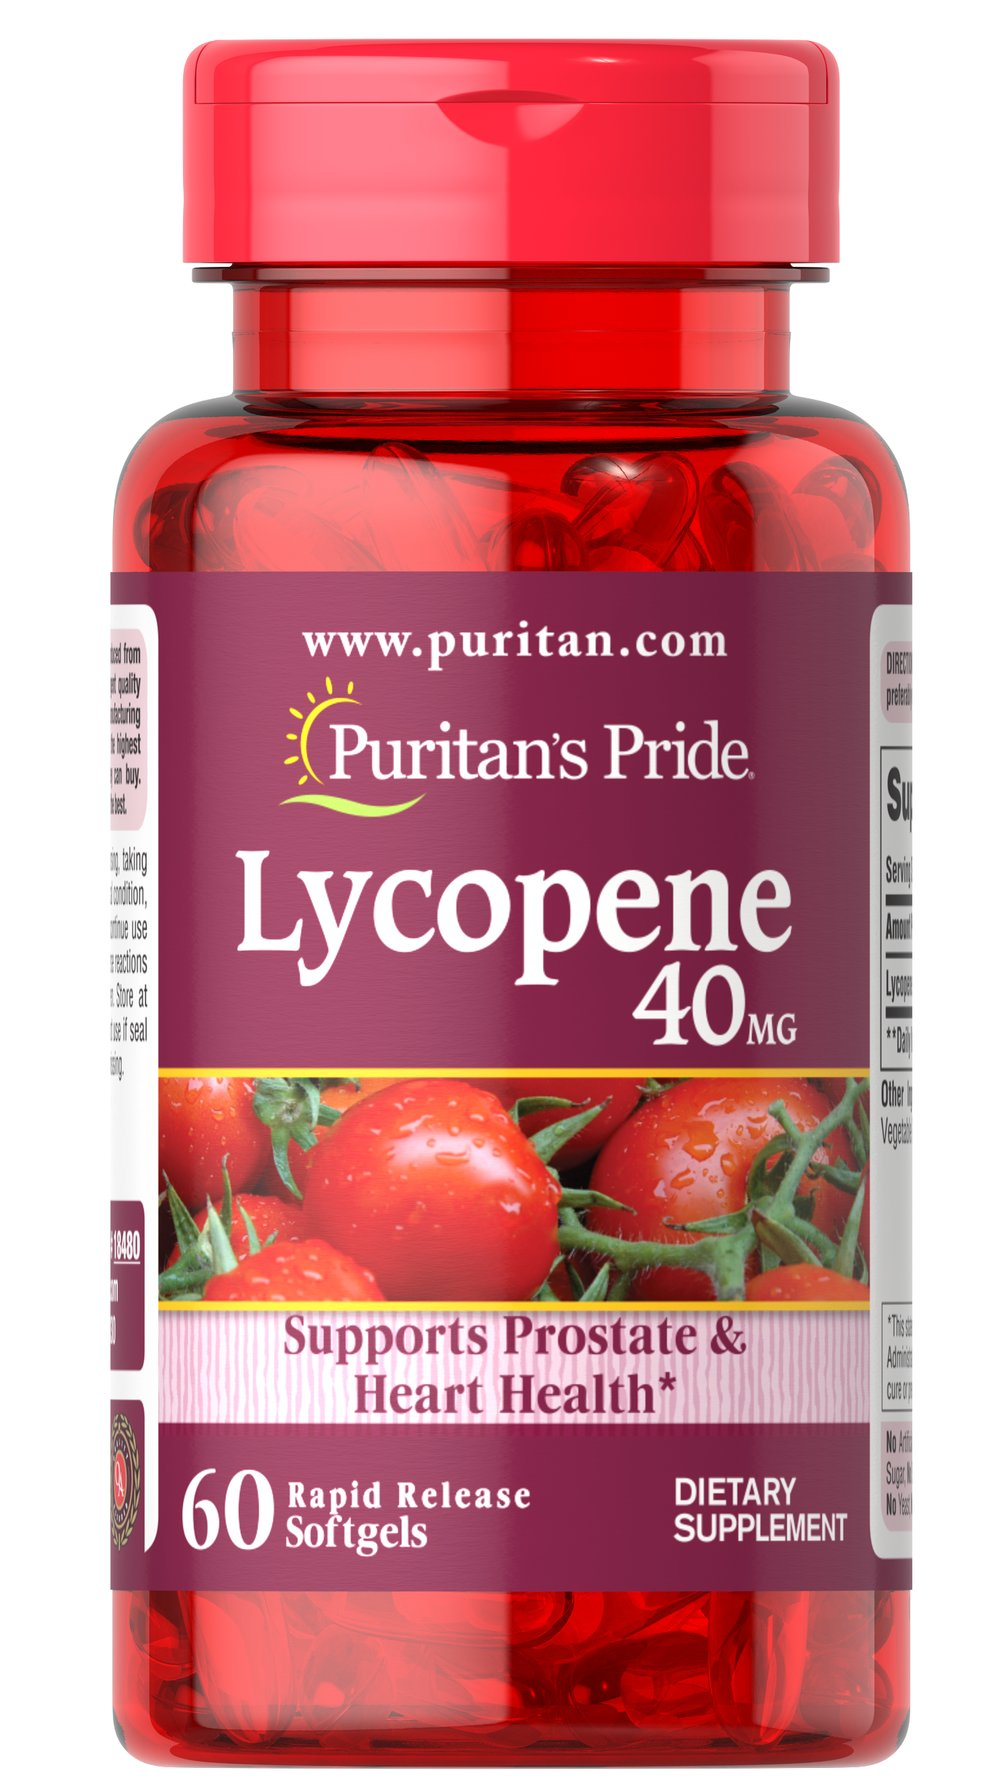 Lycopene 40 mg <p>Lycopene, a naturally occurring carotenoid, possesses antioxidant properties which help neutralize harmful free radicals in cells, and play a role in maintaining good health.**  Lycopene promotes prostate and heart health, and supports the immune system.** Adults can take one softgel daily with a meal.</p> 60 Softgels 40 mg $31.99